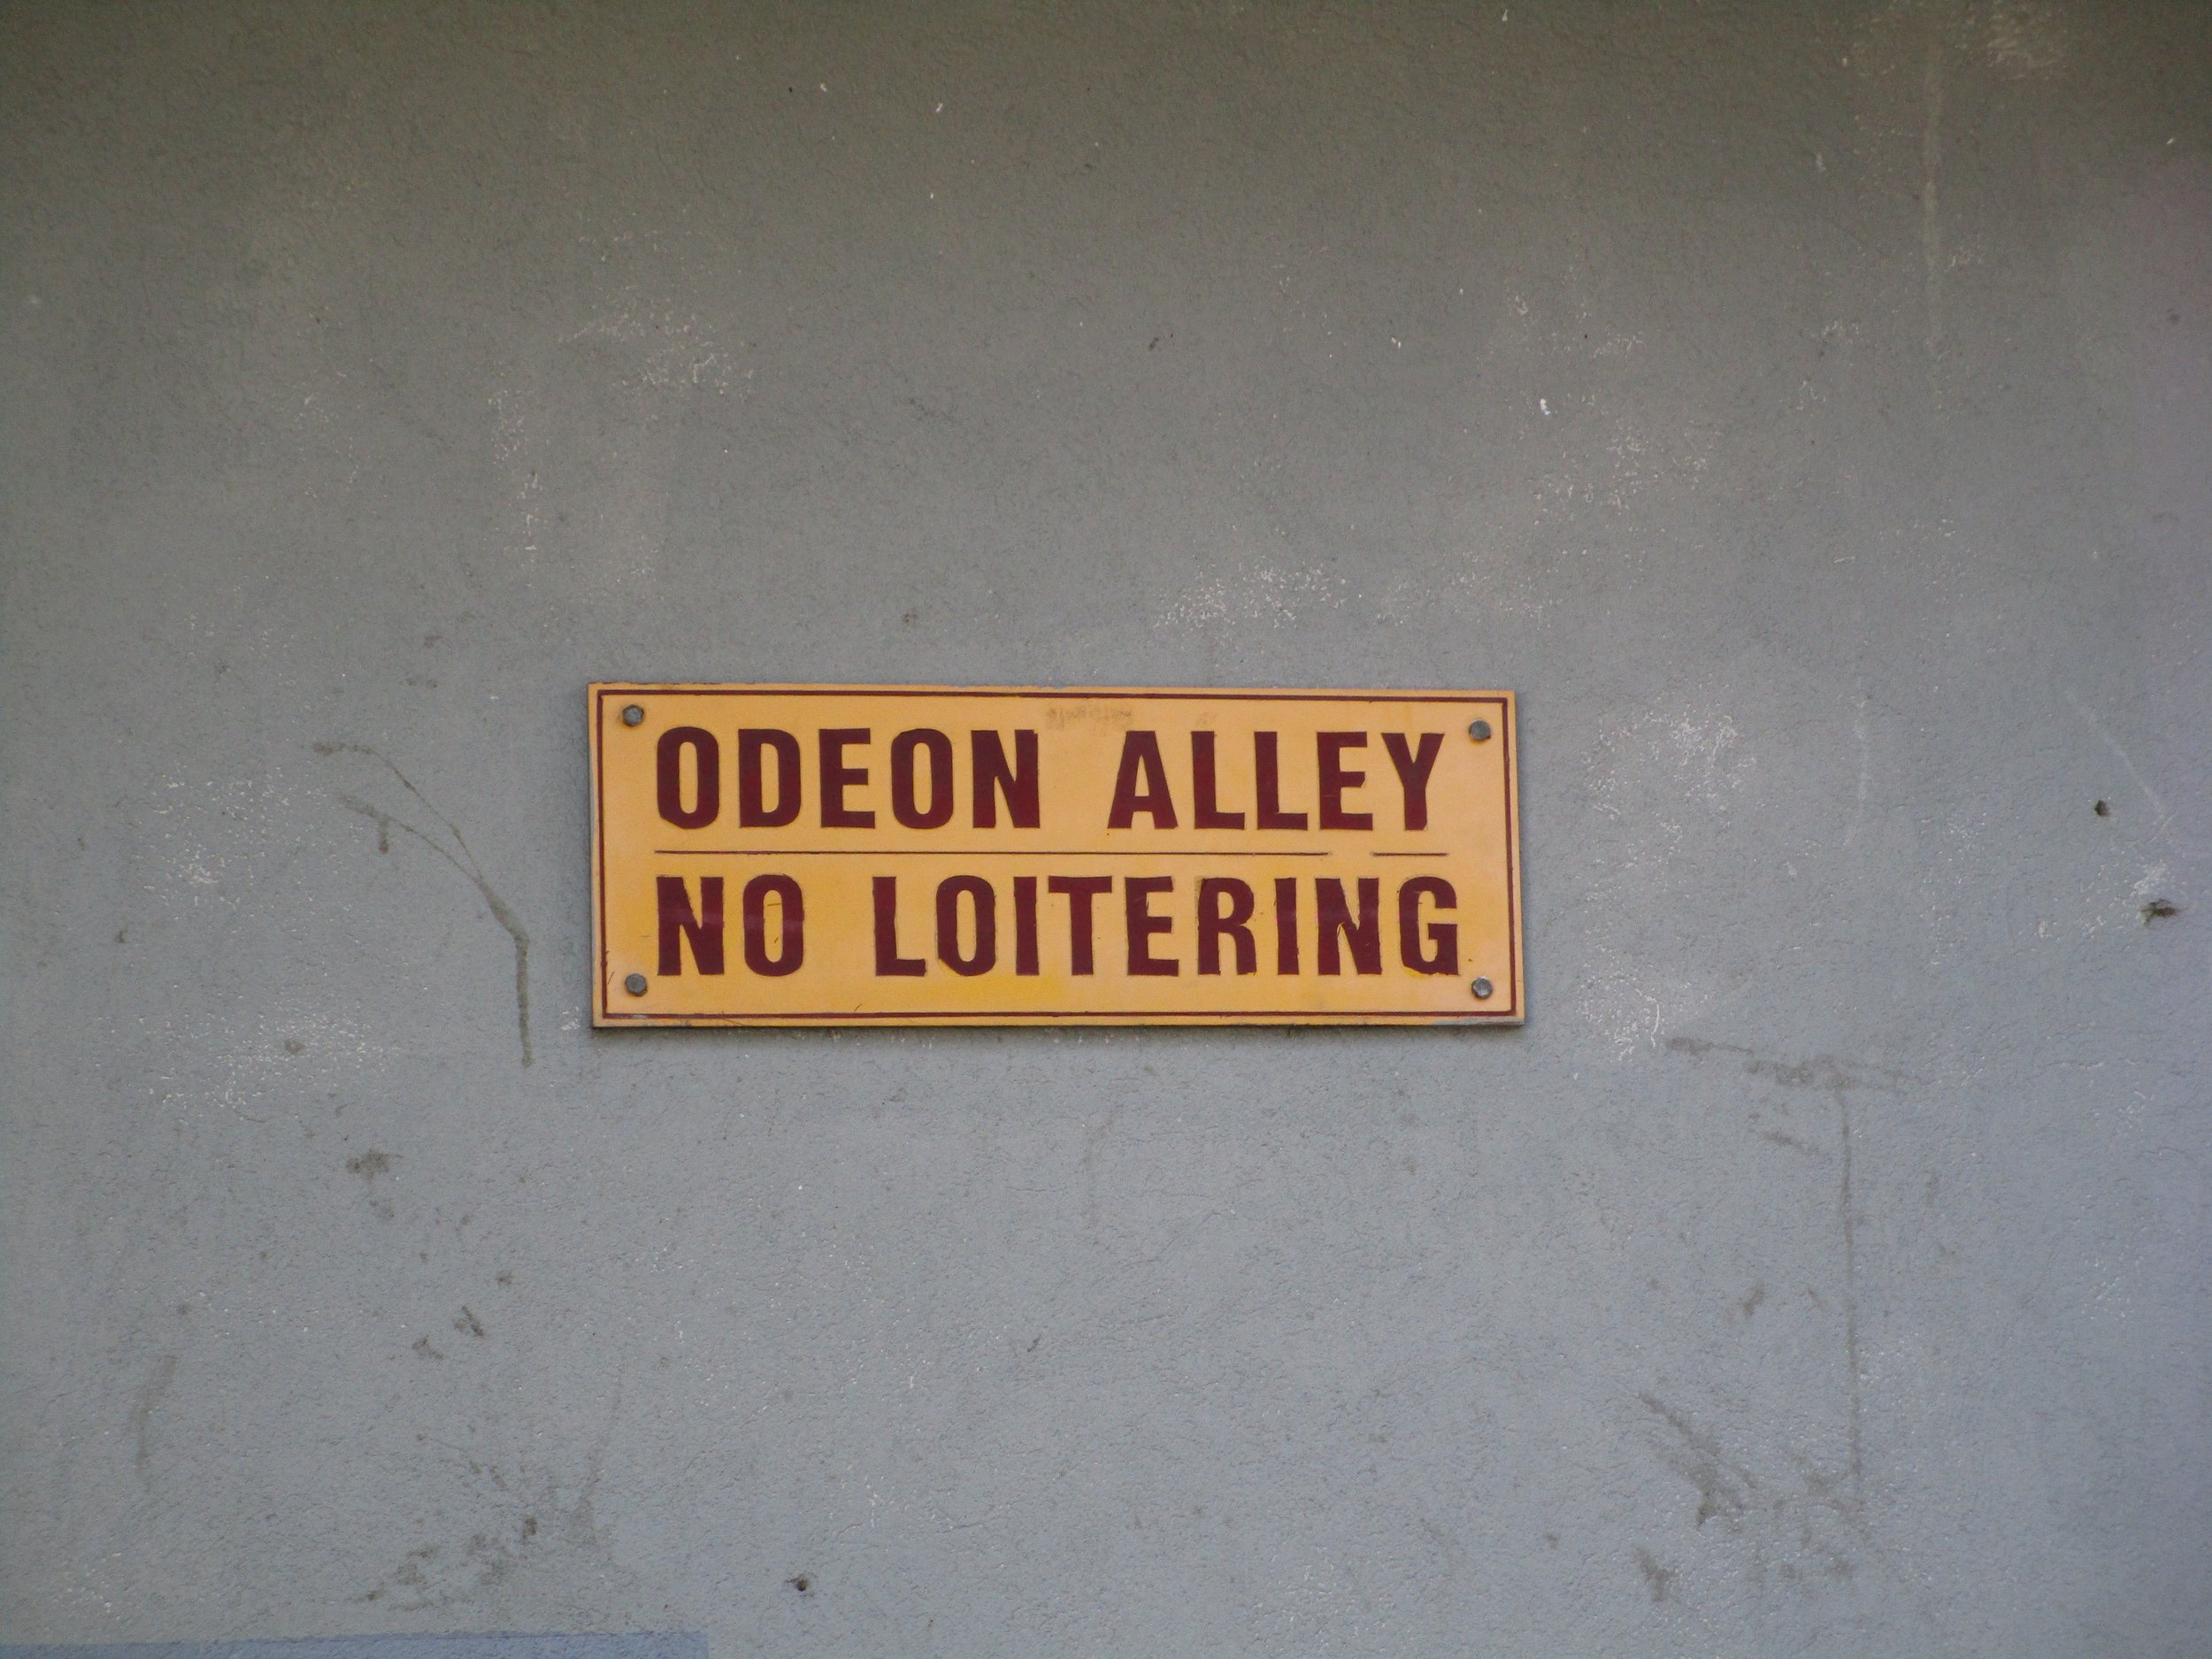 No Loitering in Odeon Alley - 2